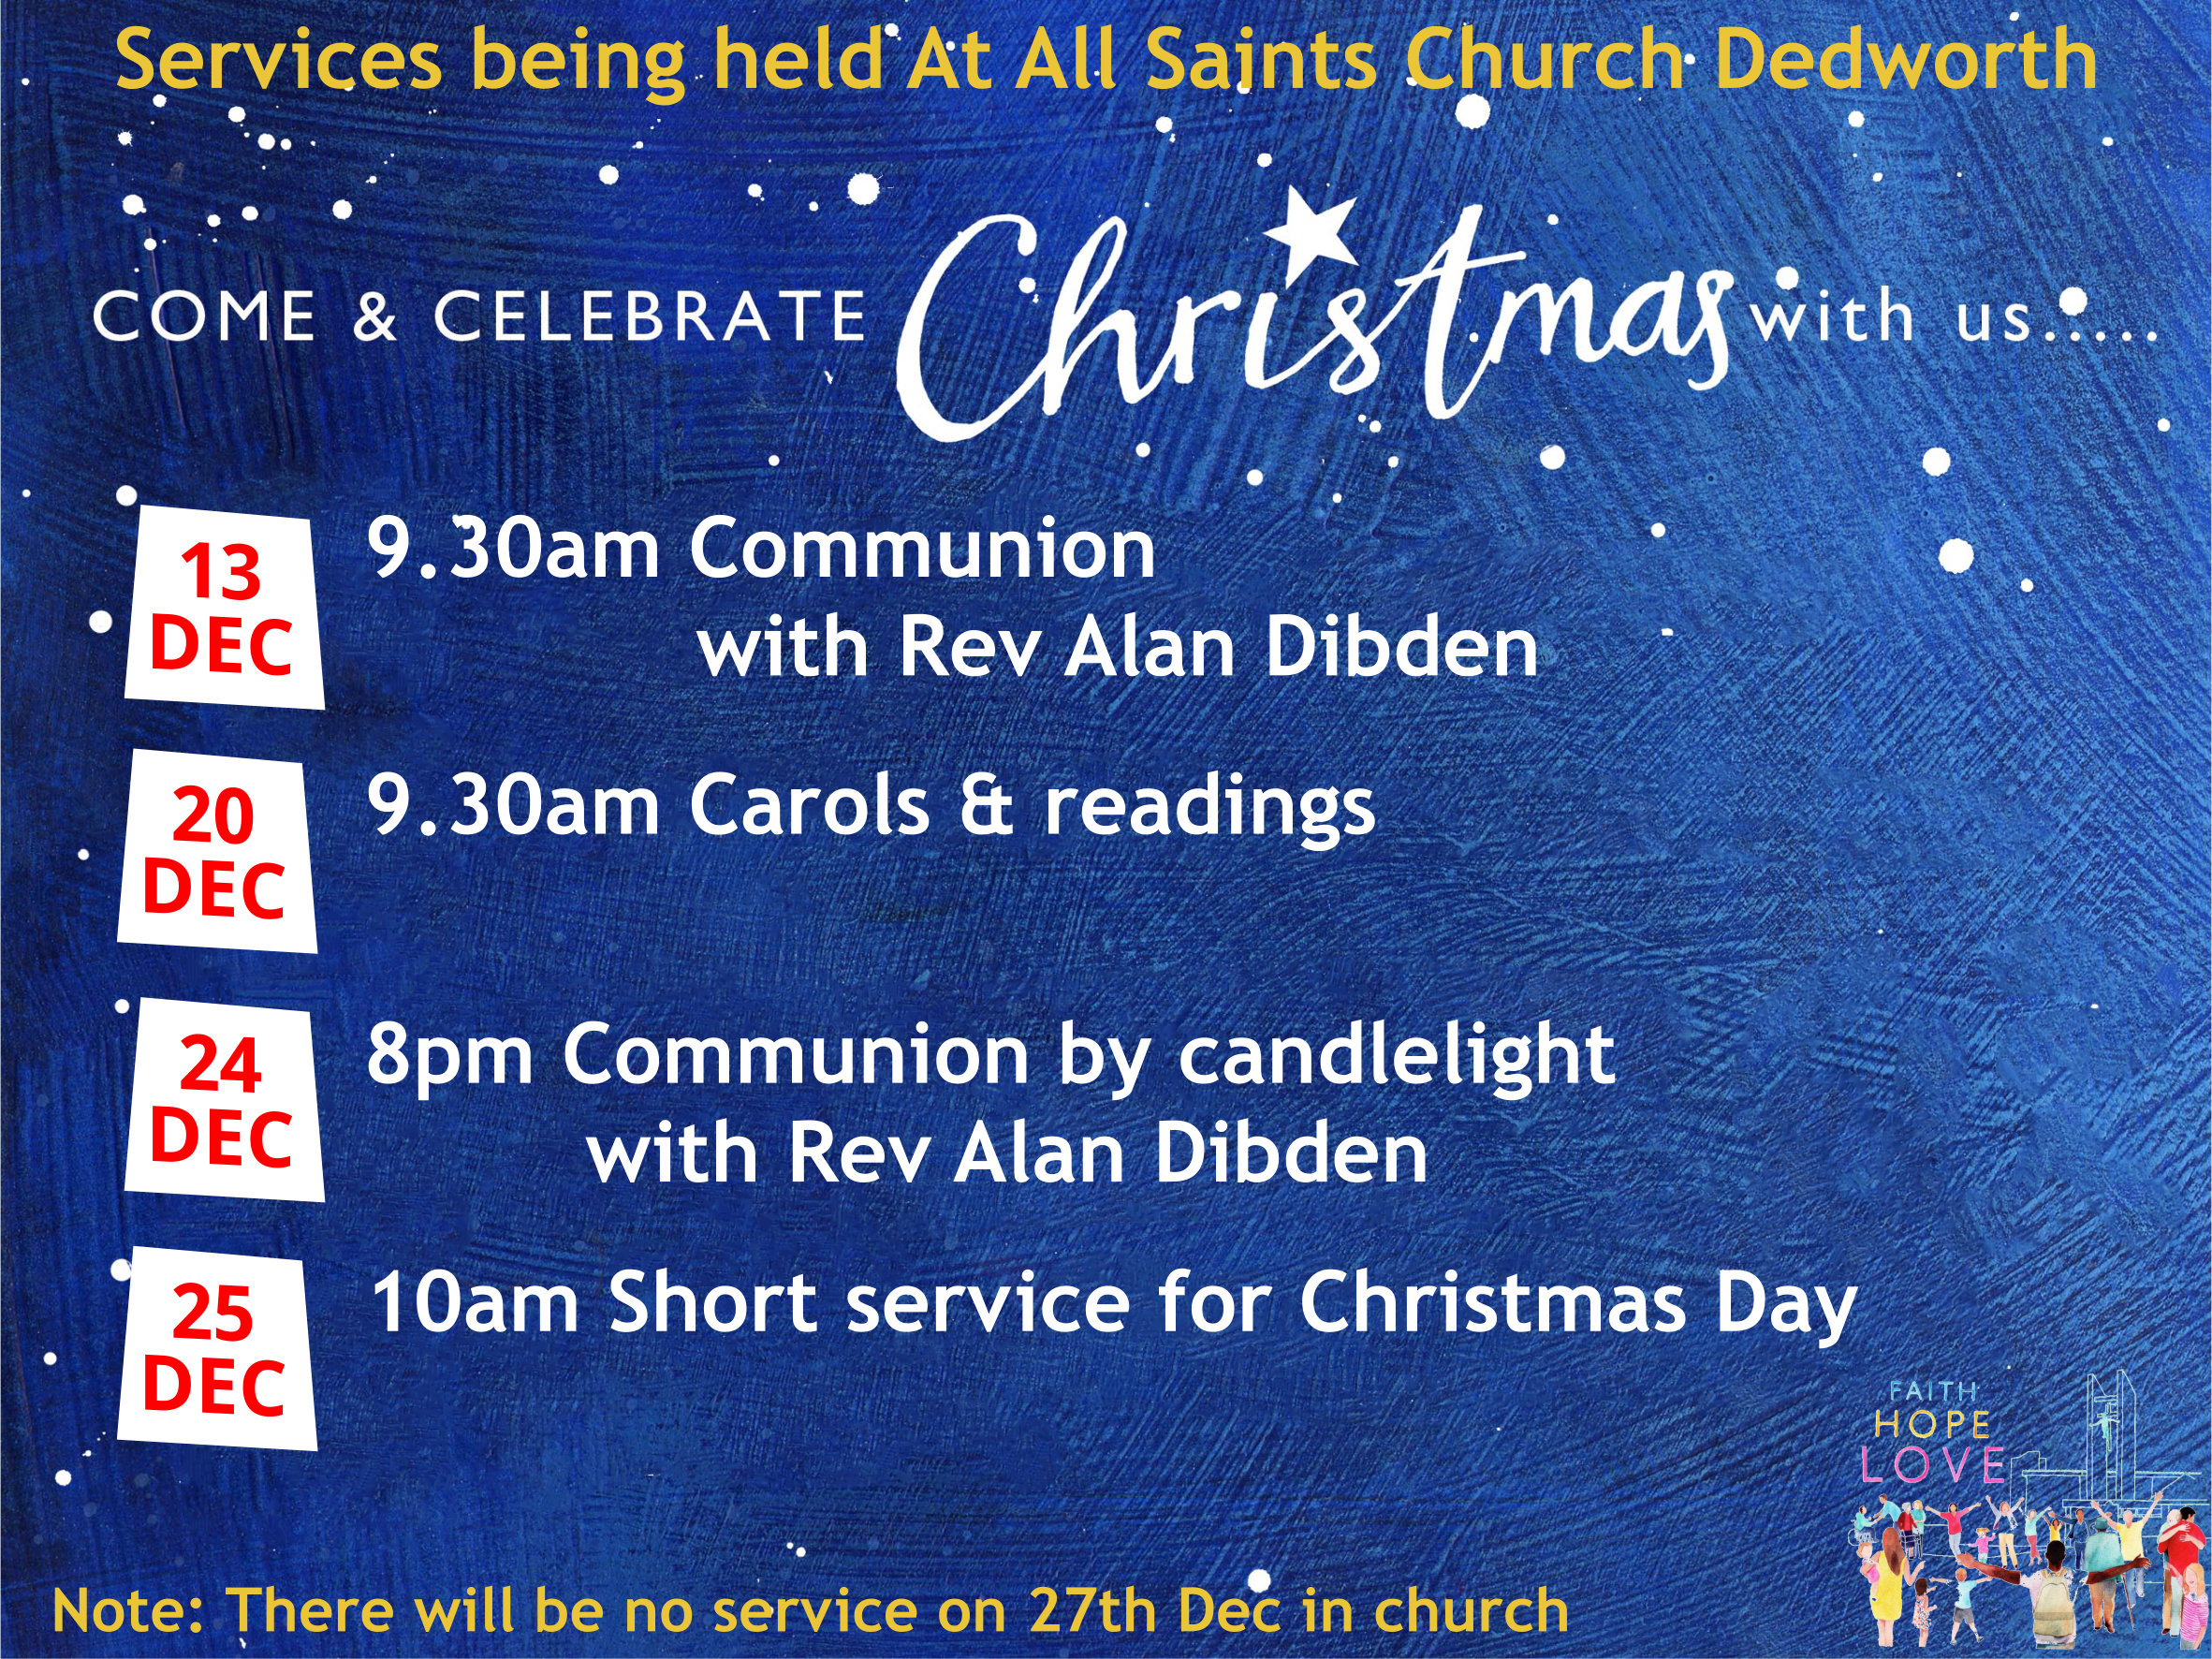 Christmas Services at All Saints Church - NOW CANCELLED